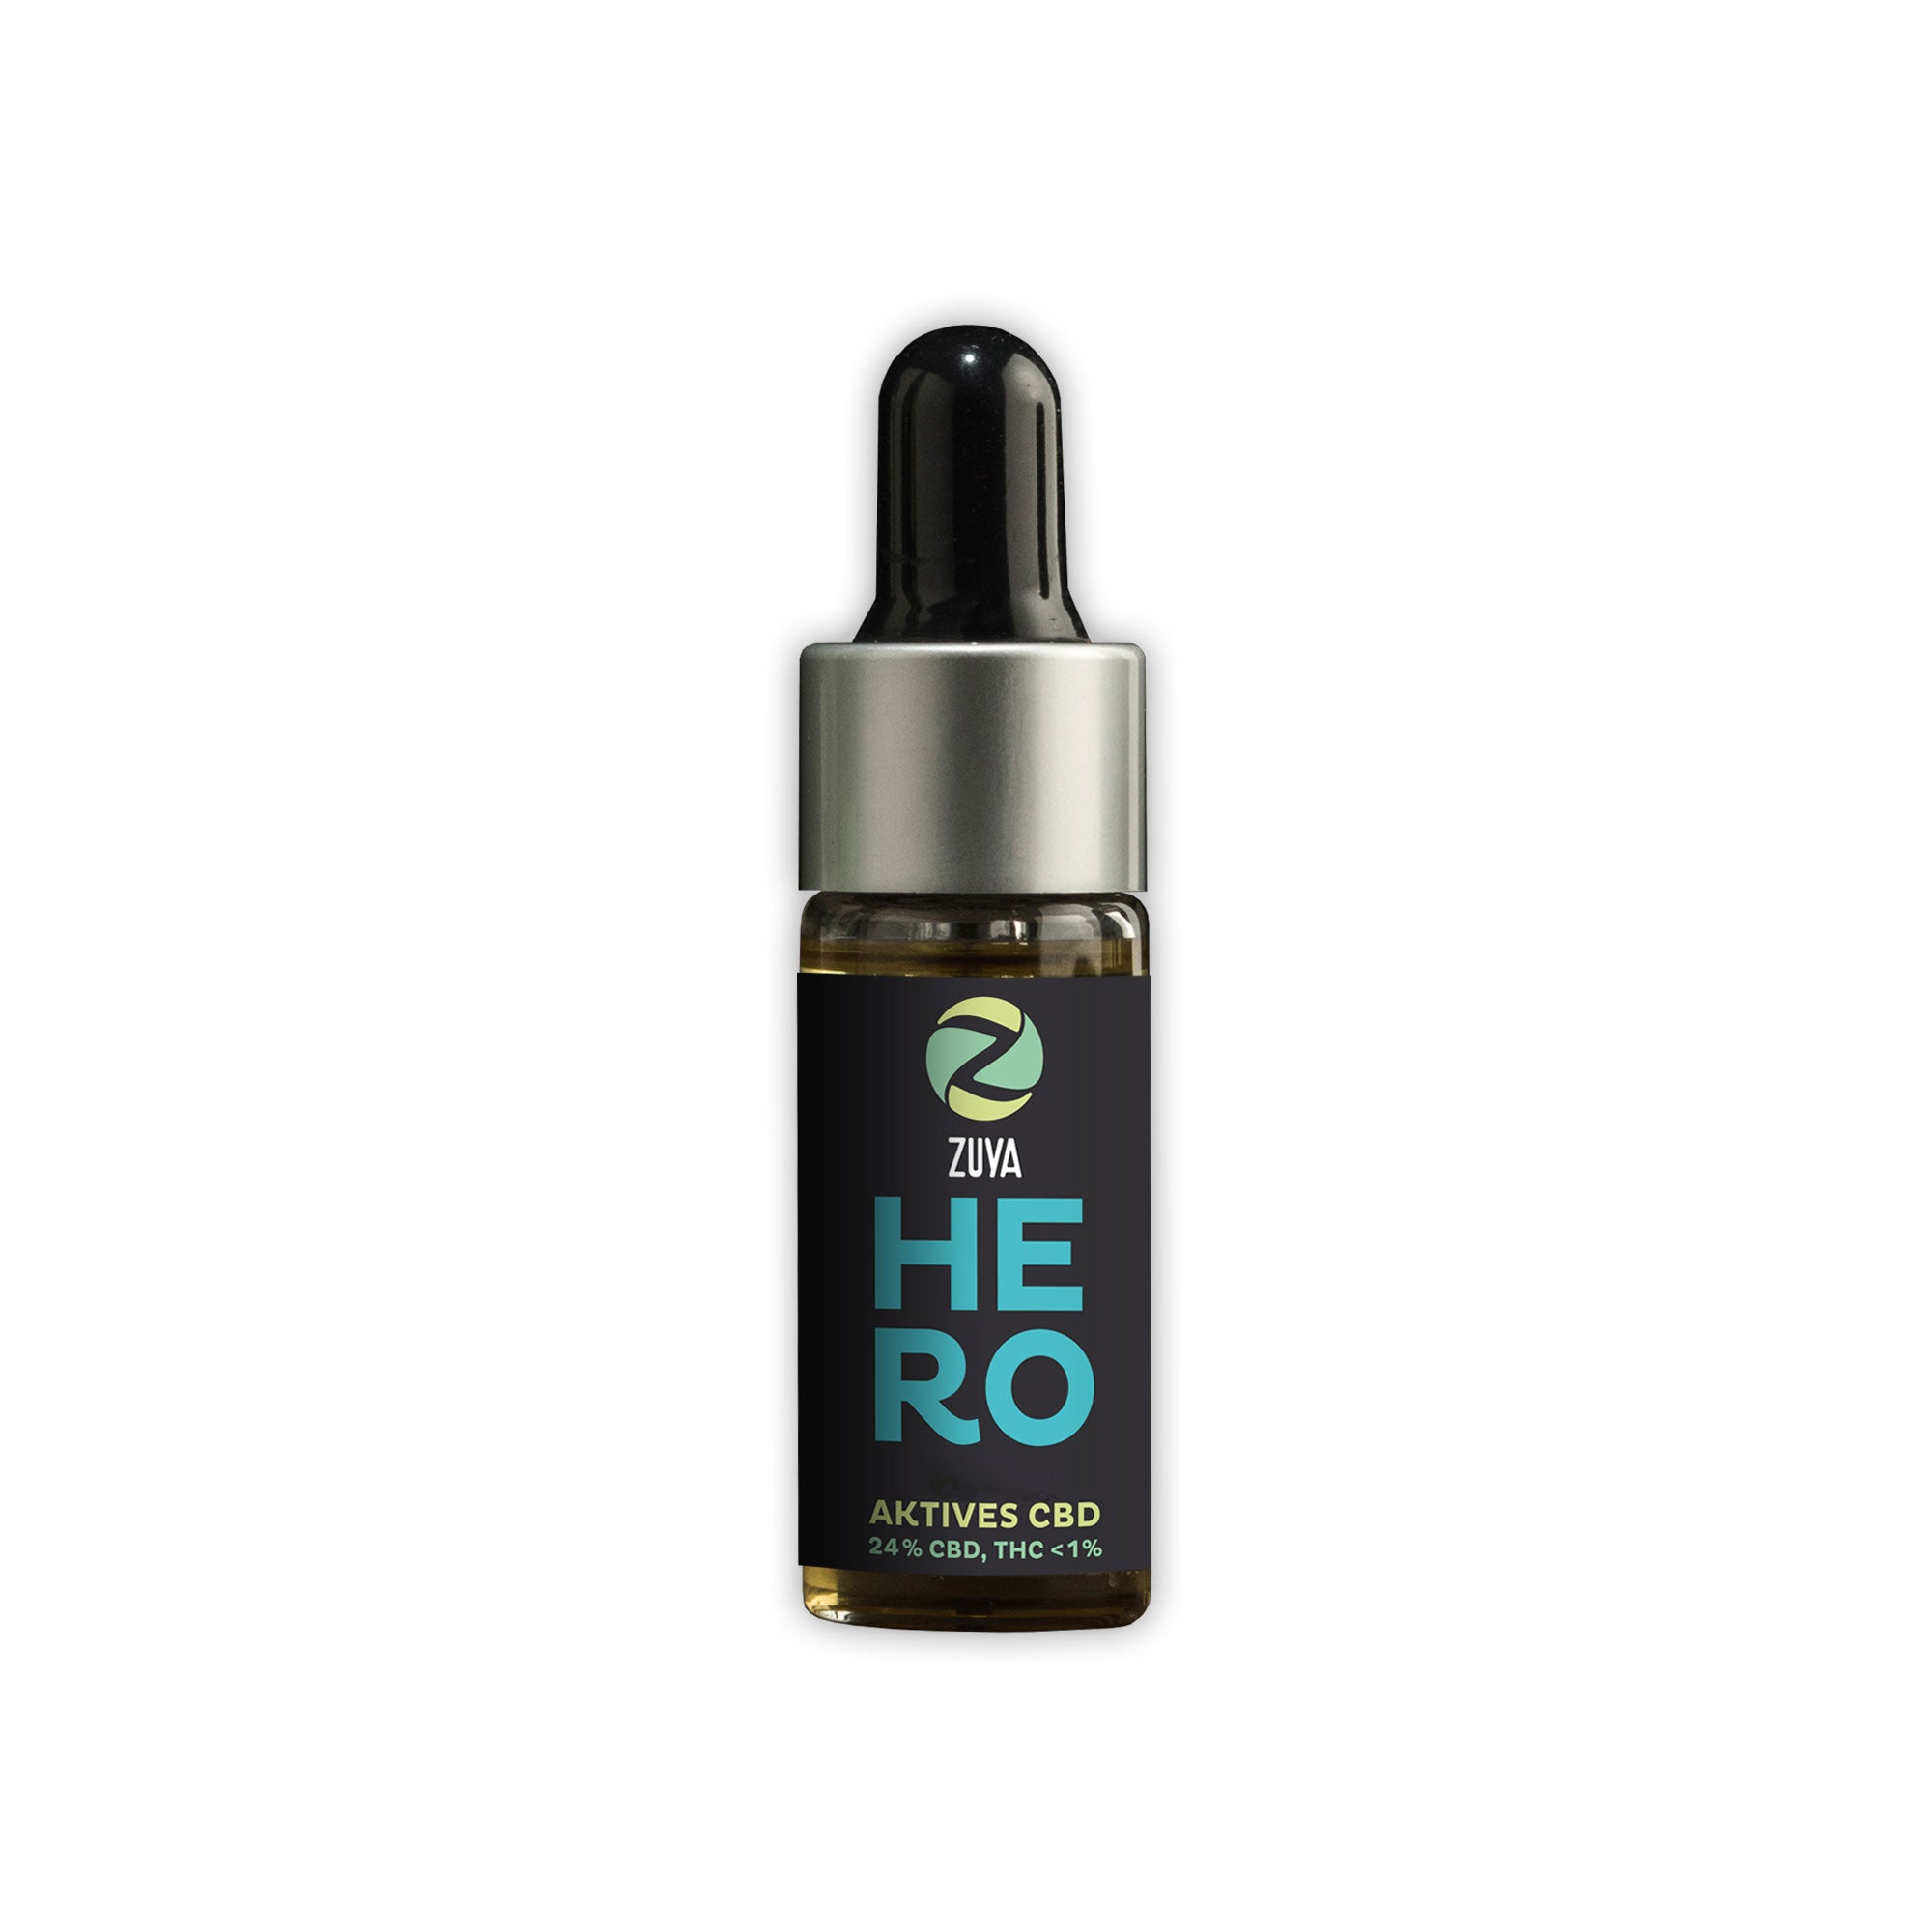 HERO - 24% Active CBD Oil (2400mg)-CBD Oil-Zuya-Swiss CBD Shop-uWeed